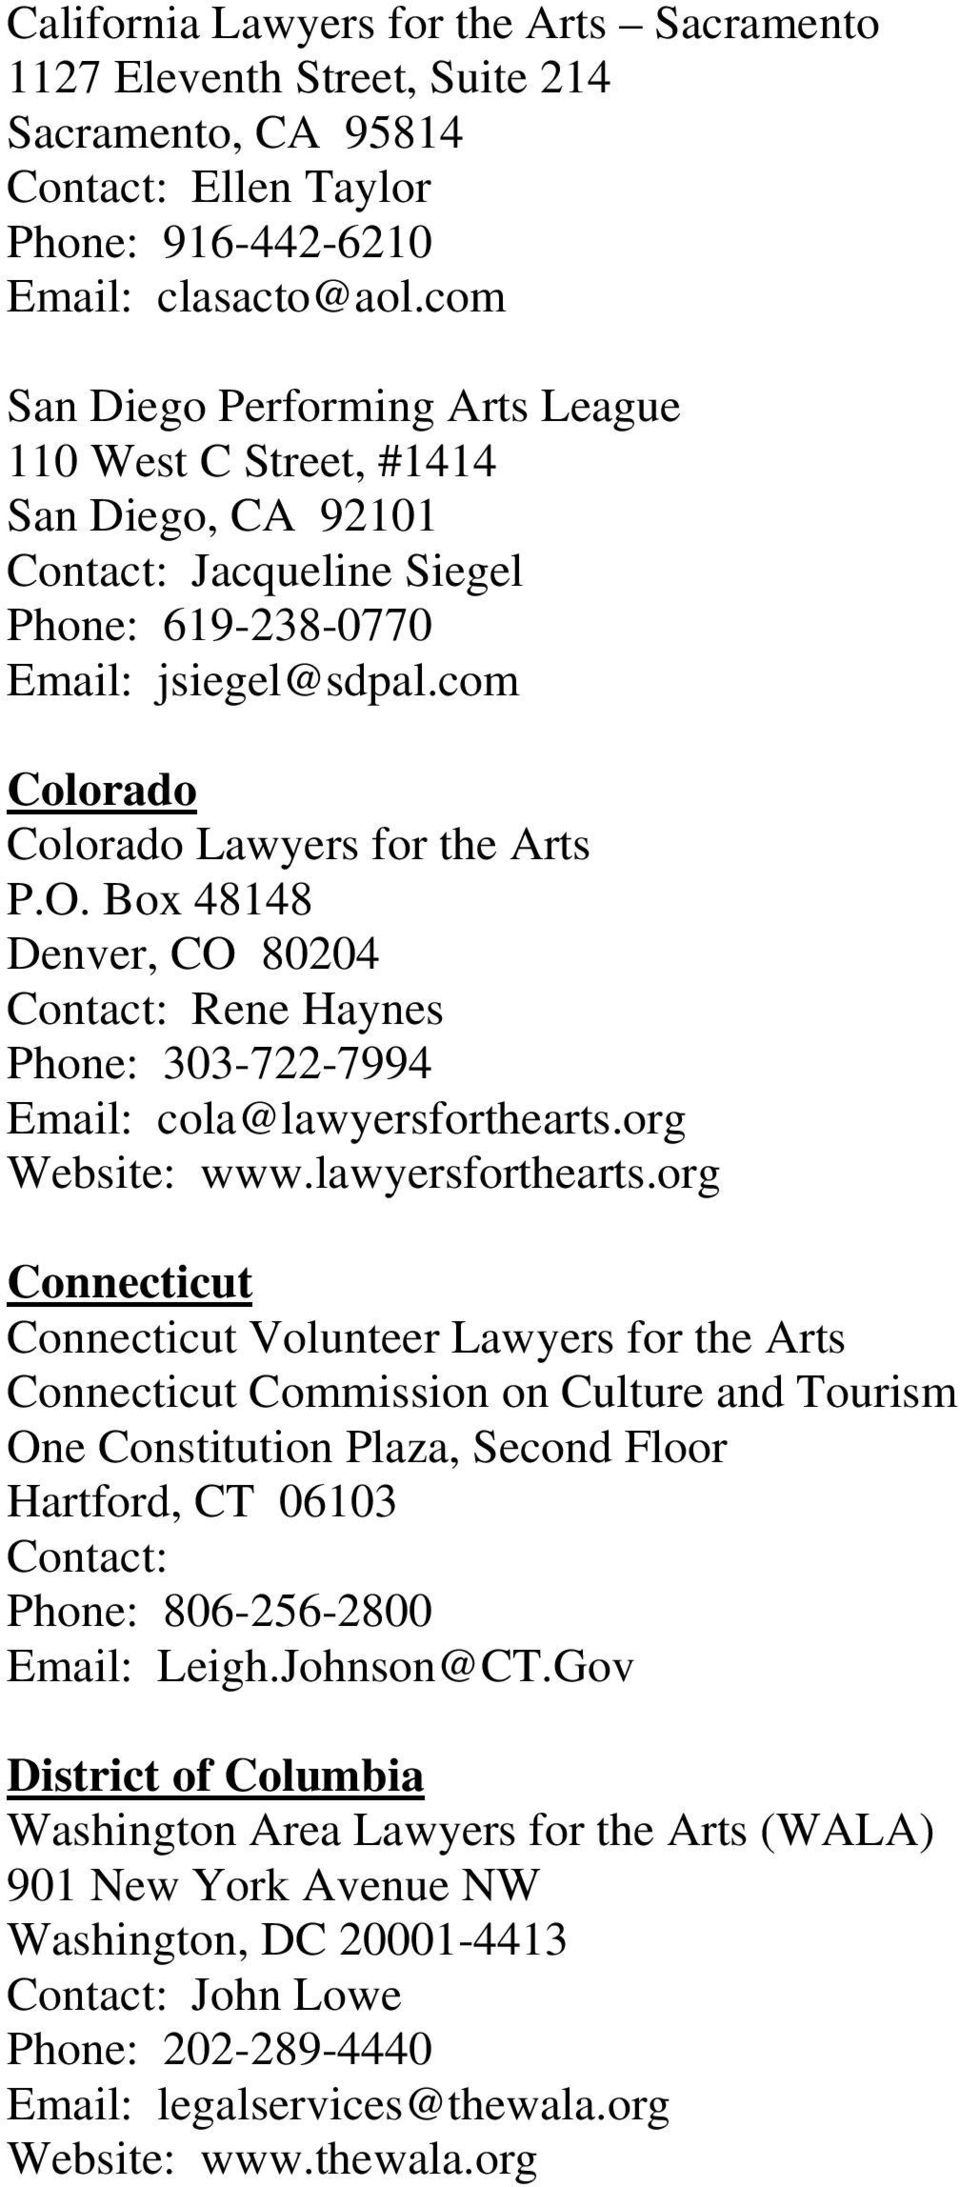 Box 48148 Denver, CO 80204 Contact: Rene Haynes Phone: 303-722-7994 Email: cola@lawyersforthearts.